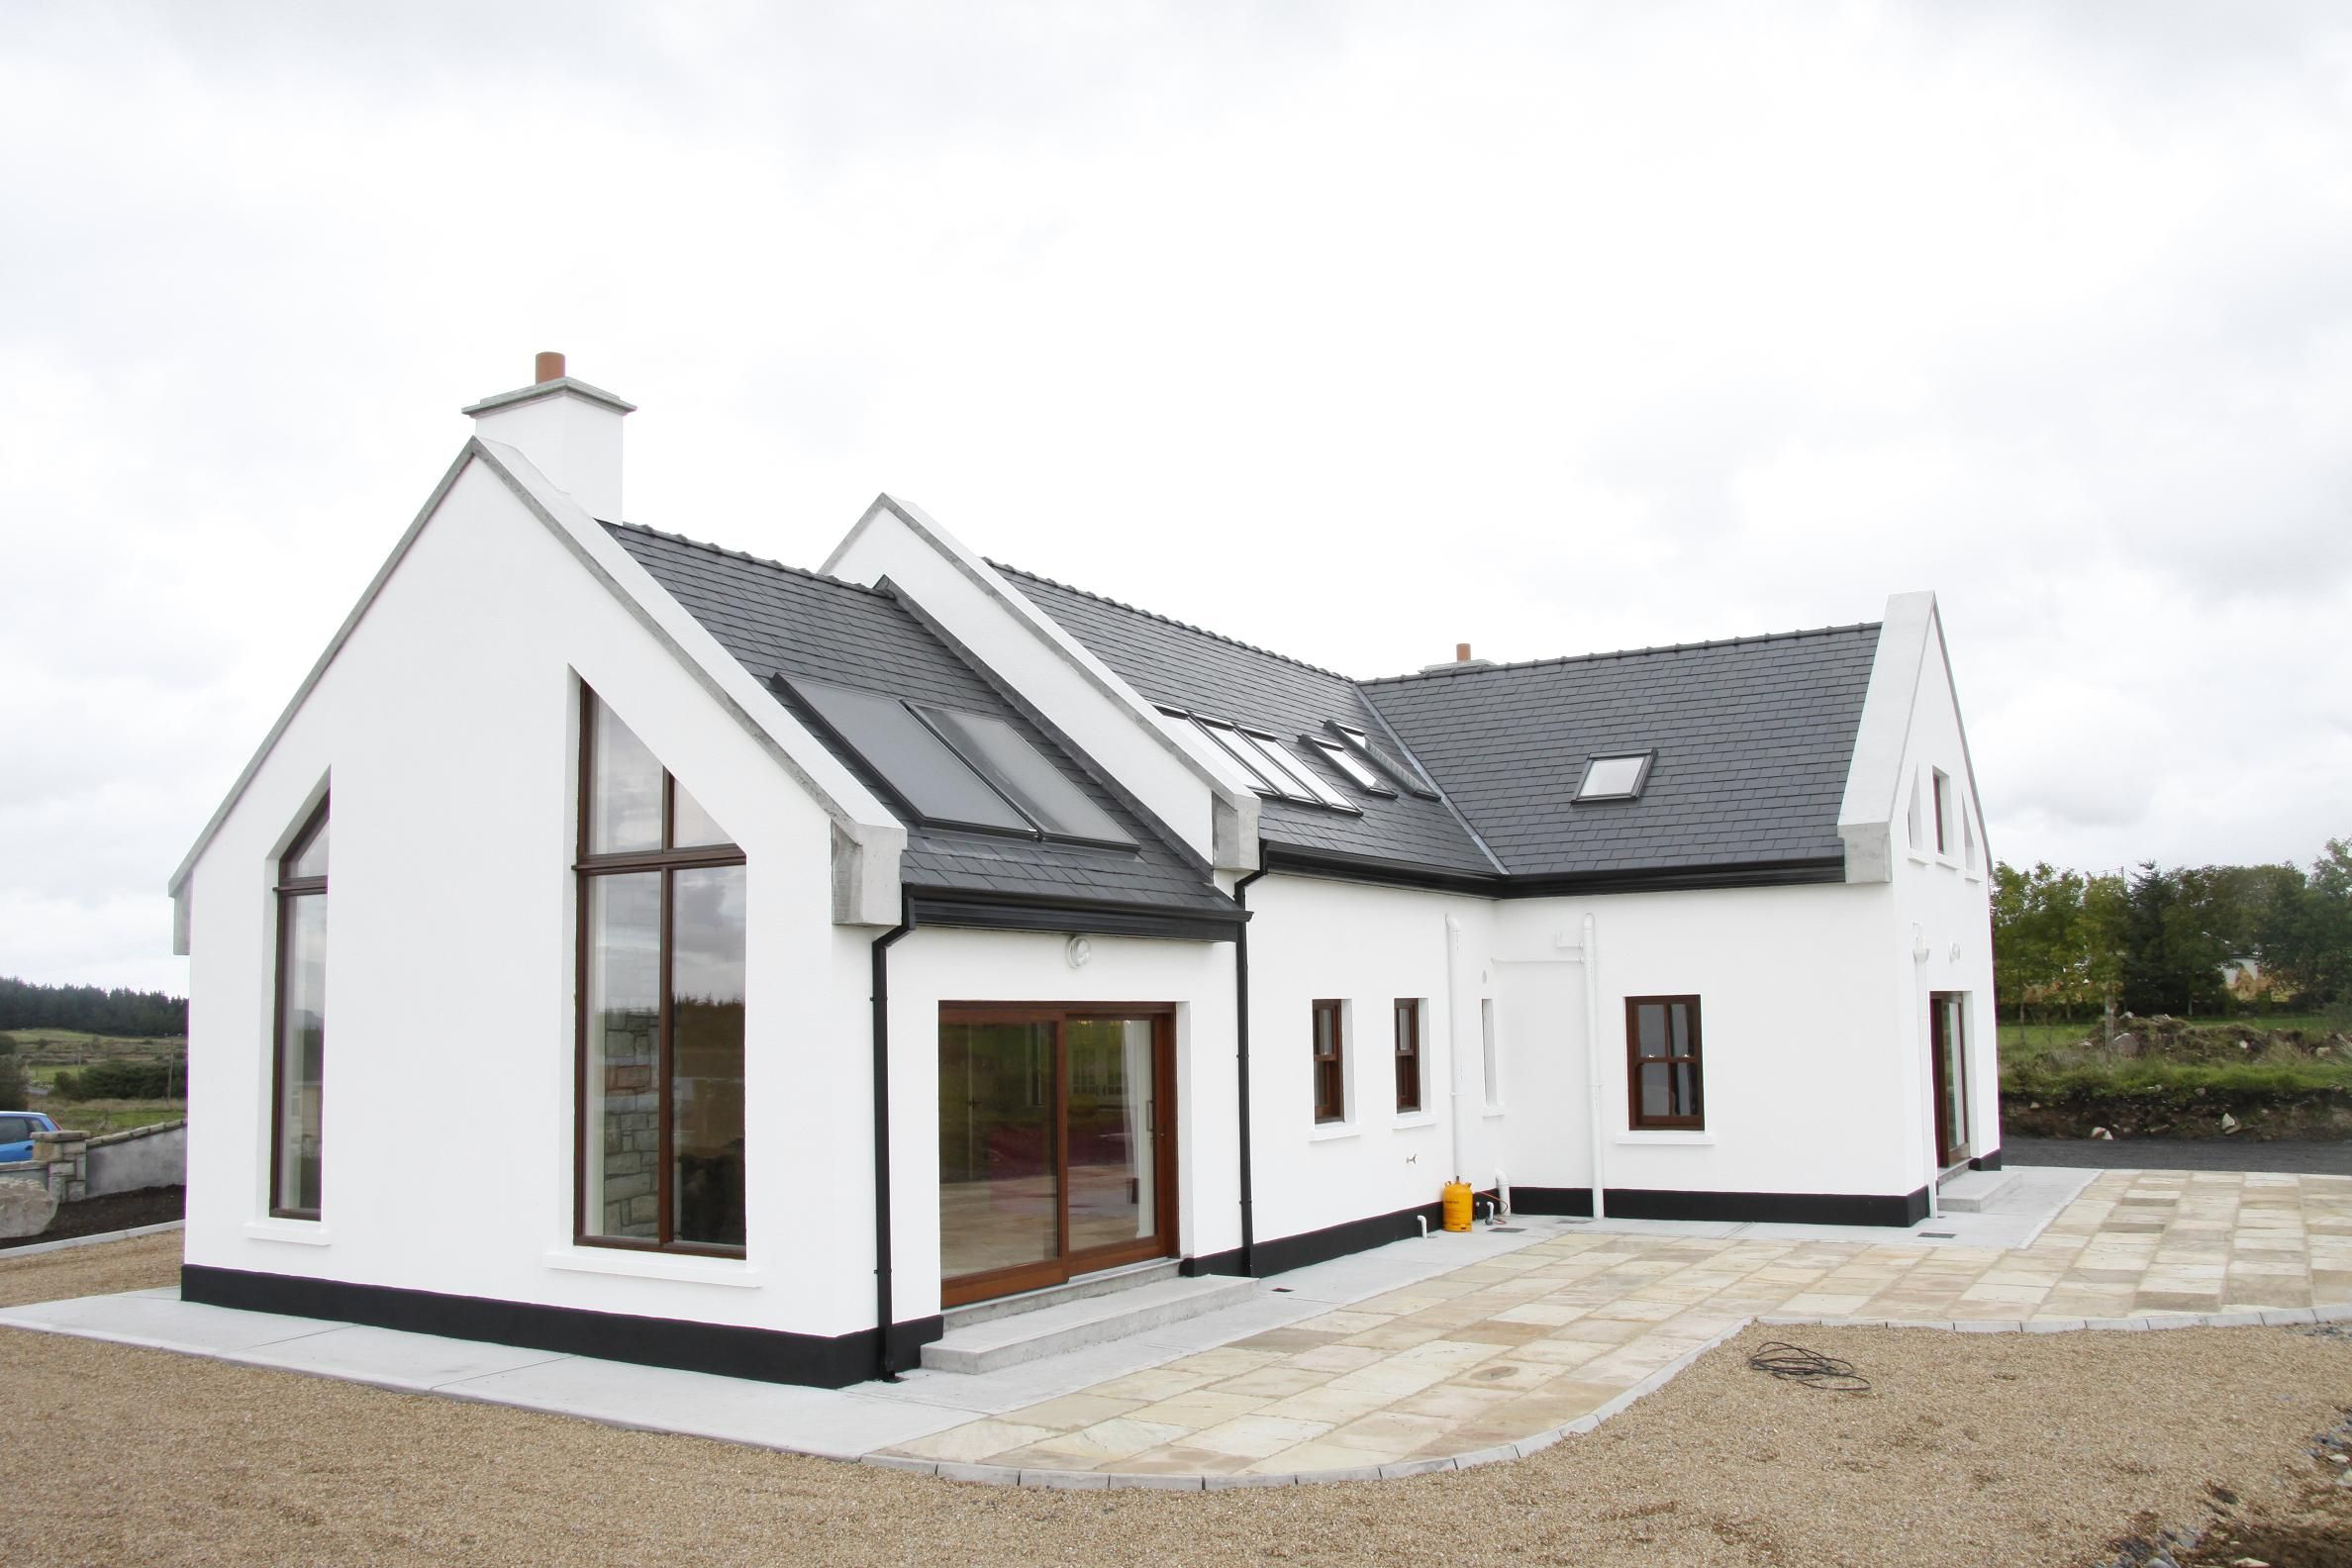 Exterior bungalow house ireland google search house for Traditional irish cottage designs